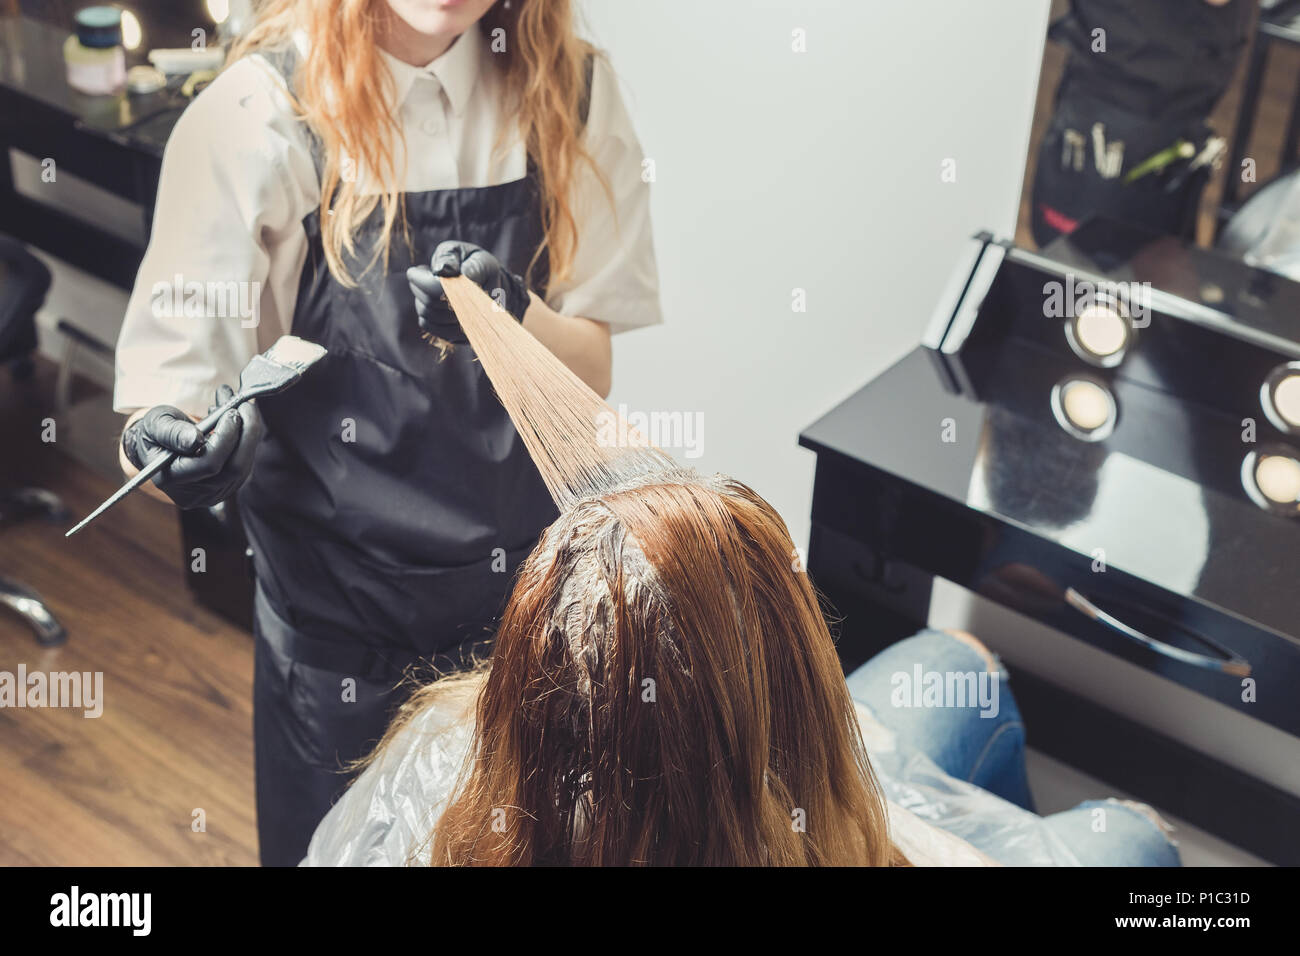 Female stylist applying a dye to the clients hair at beauty salon - Stock Image